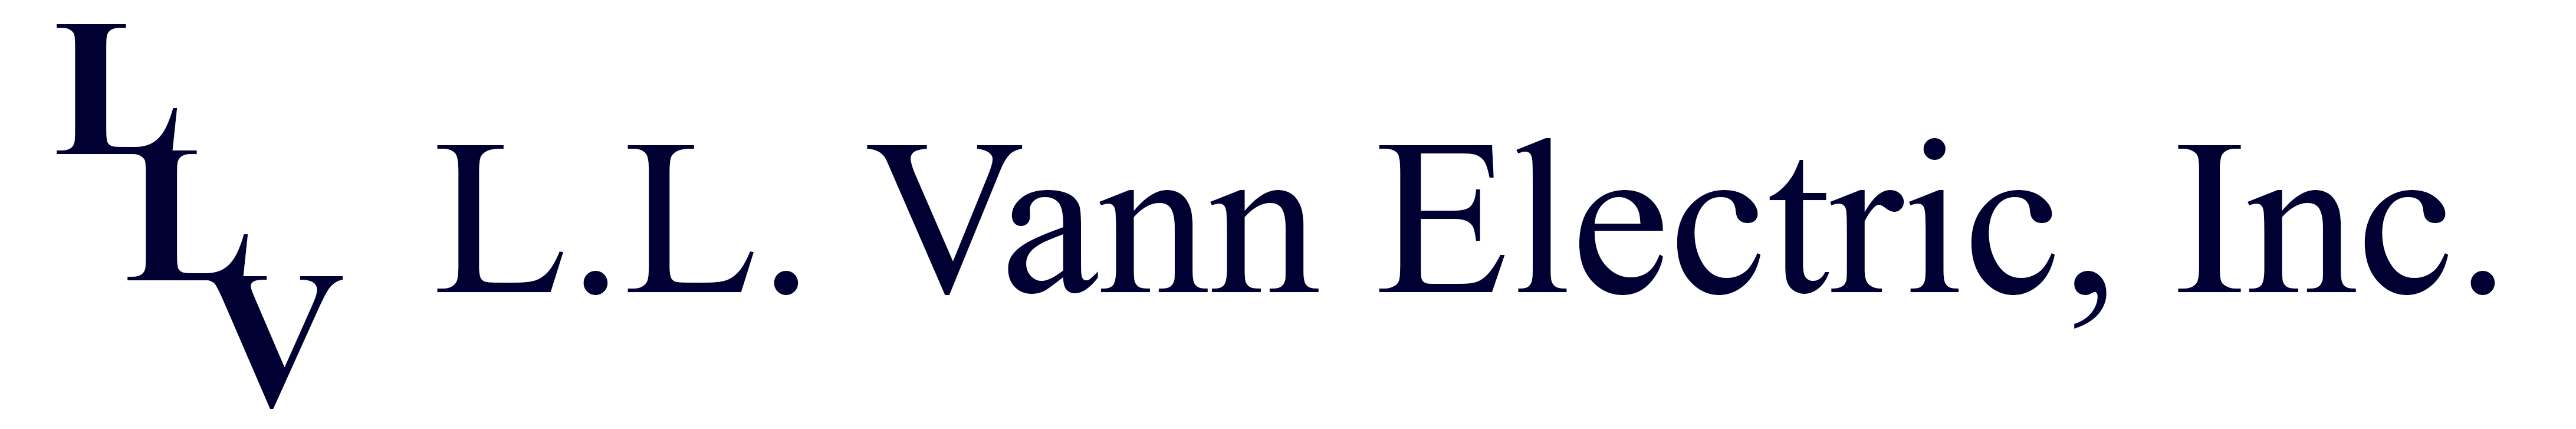 LL Vann Electric logo